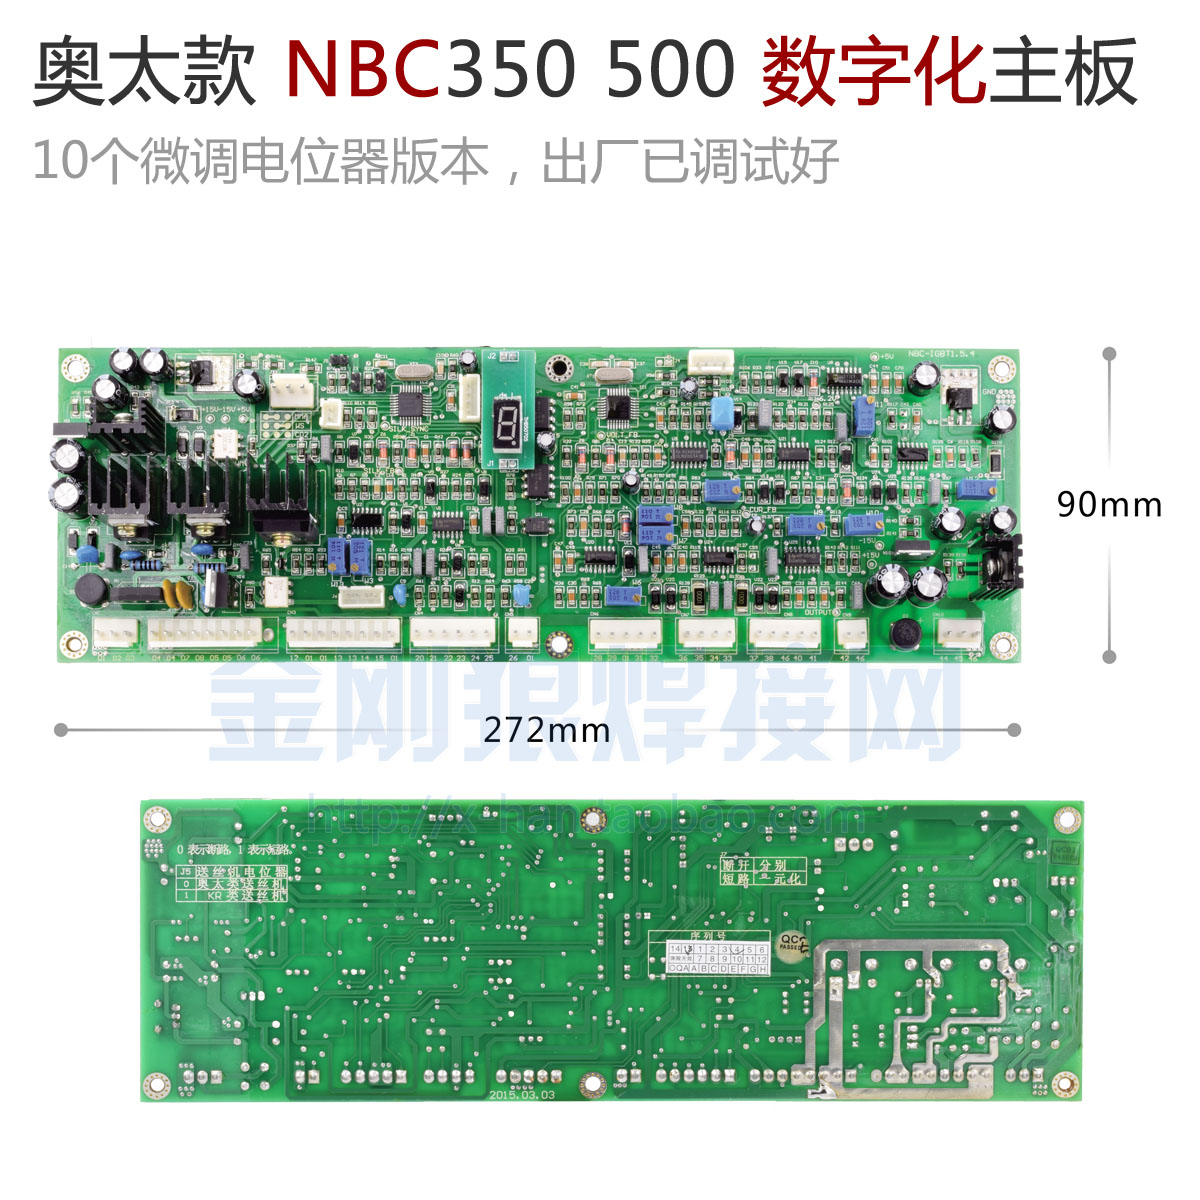 лучшая цена YDT NBC350 500 inverter IGBT gas shielded welding machine circuit board digital circuit board tape welding